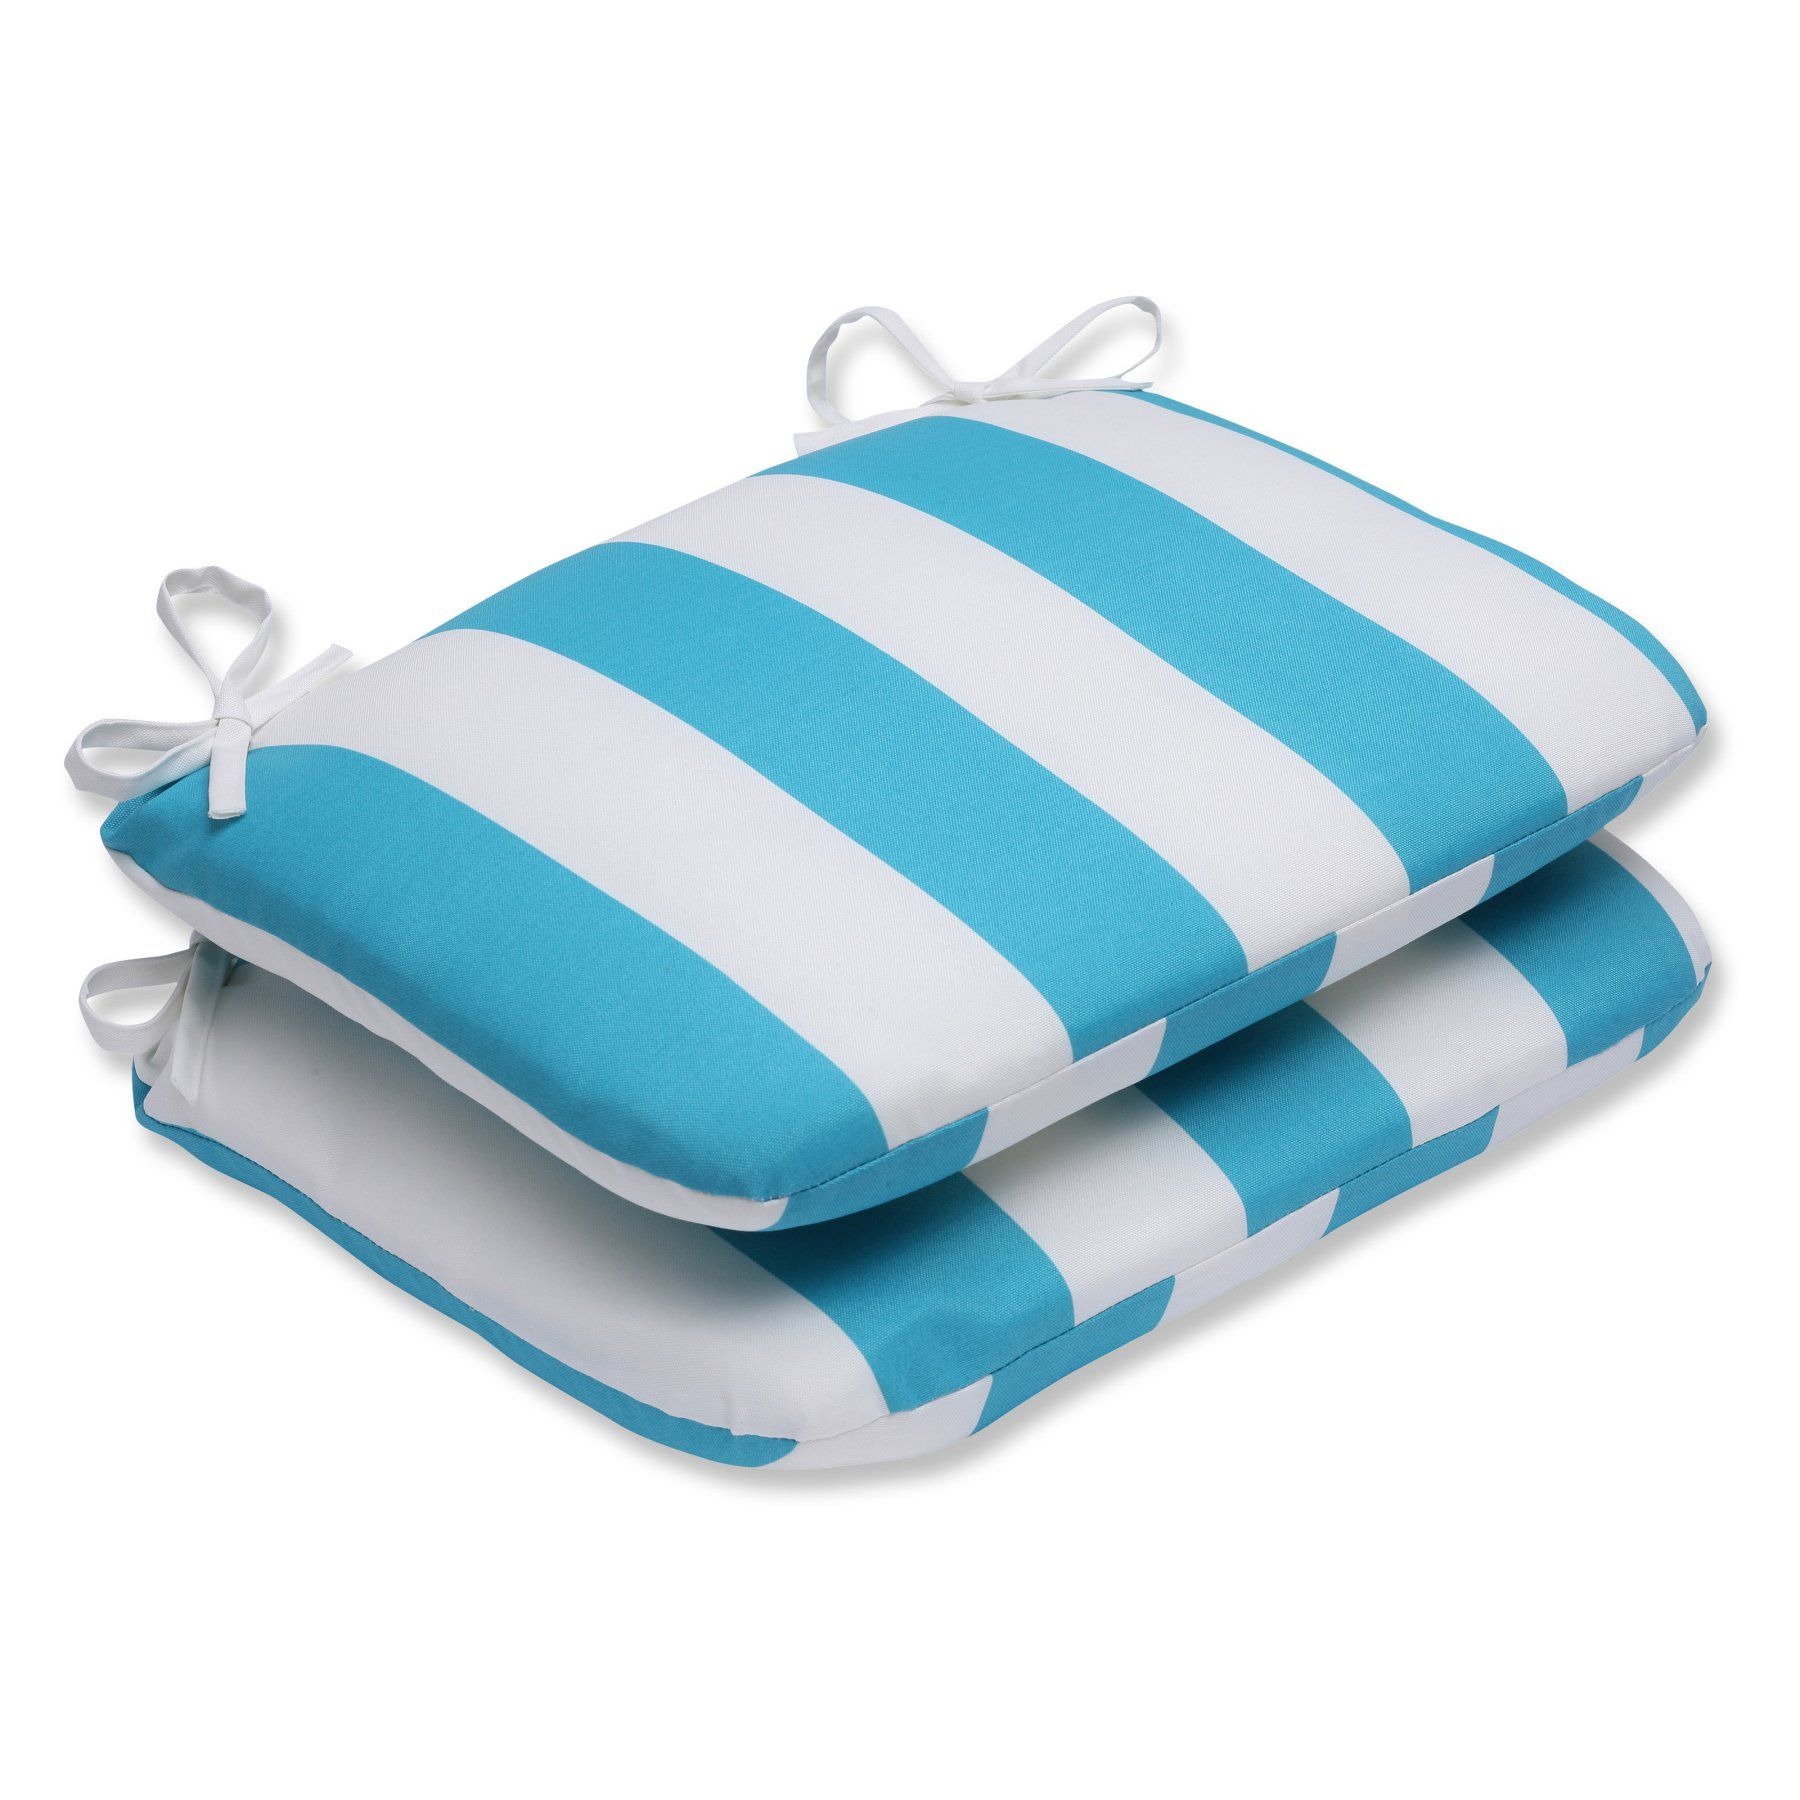 Pillow perfect cabana turquoise stripe rounded corners x